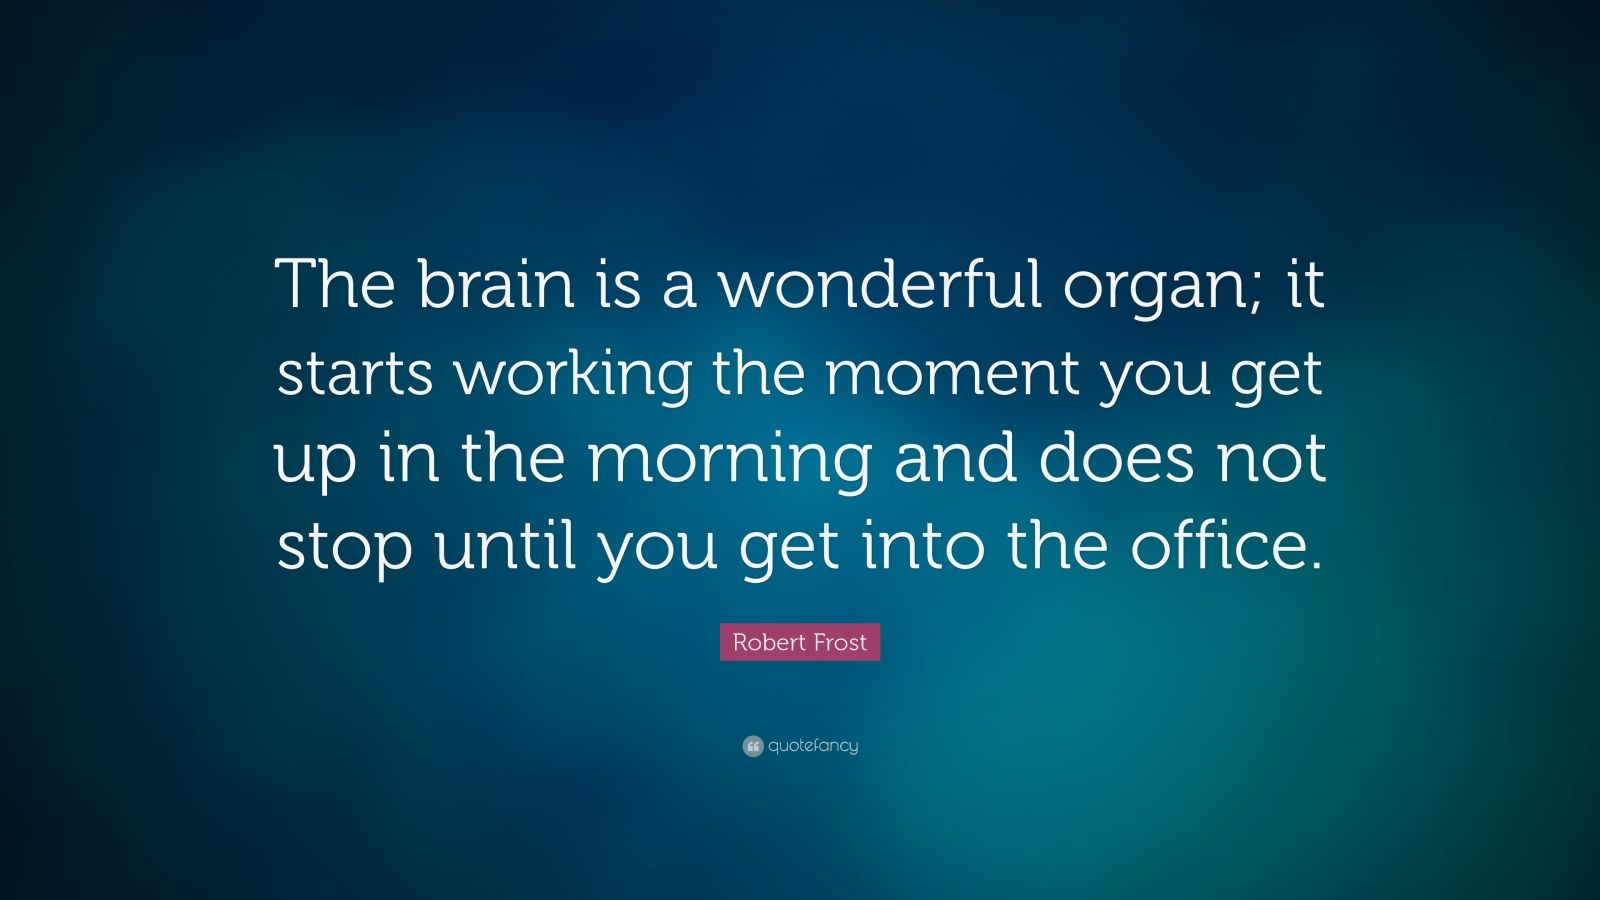 """Robert Frost Quote: """"The brain is a wonderful organ; it starts working the moment you get up in the morning and does not stop until you get into the office."""""""